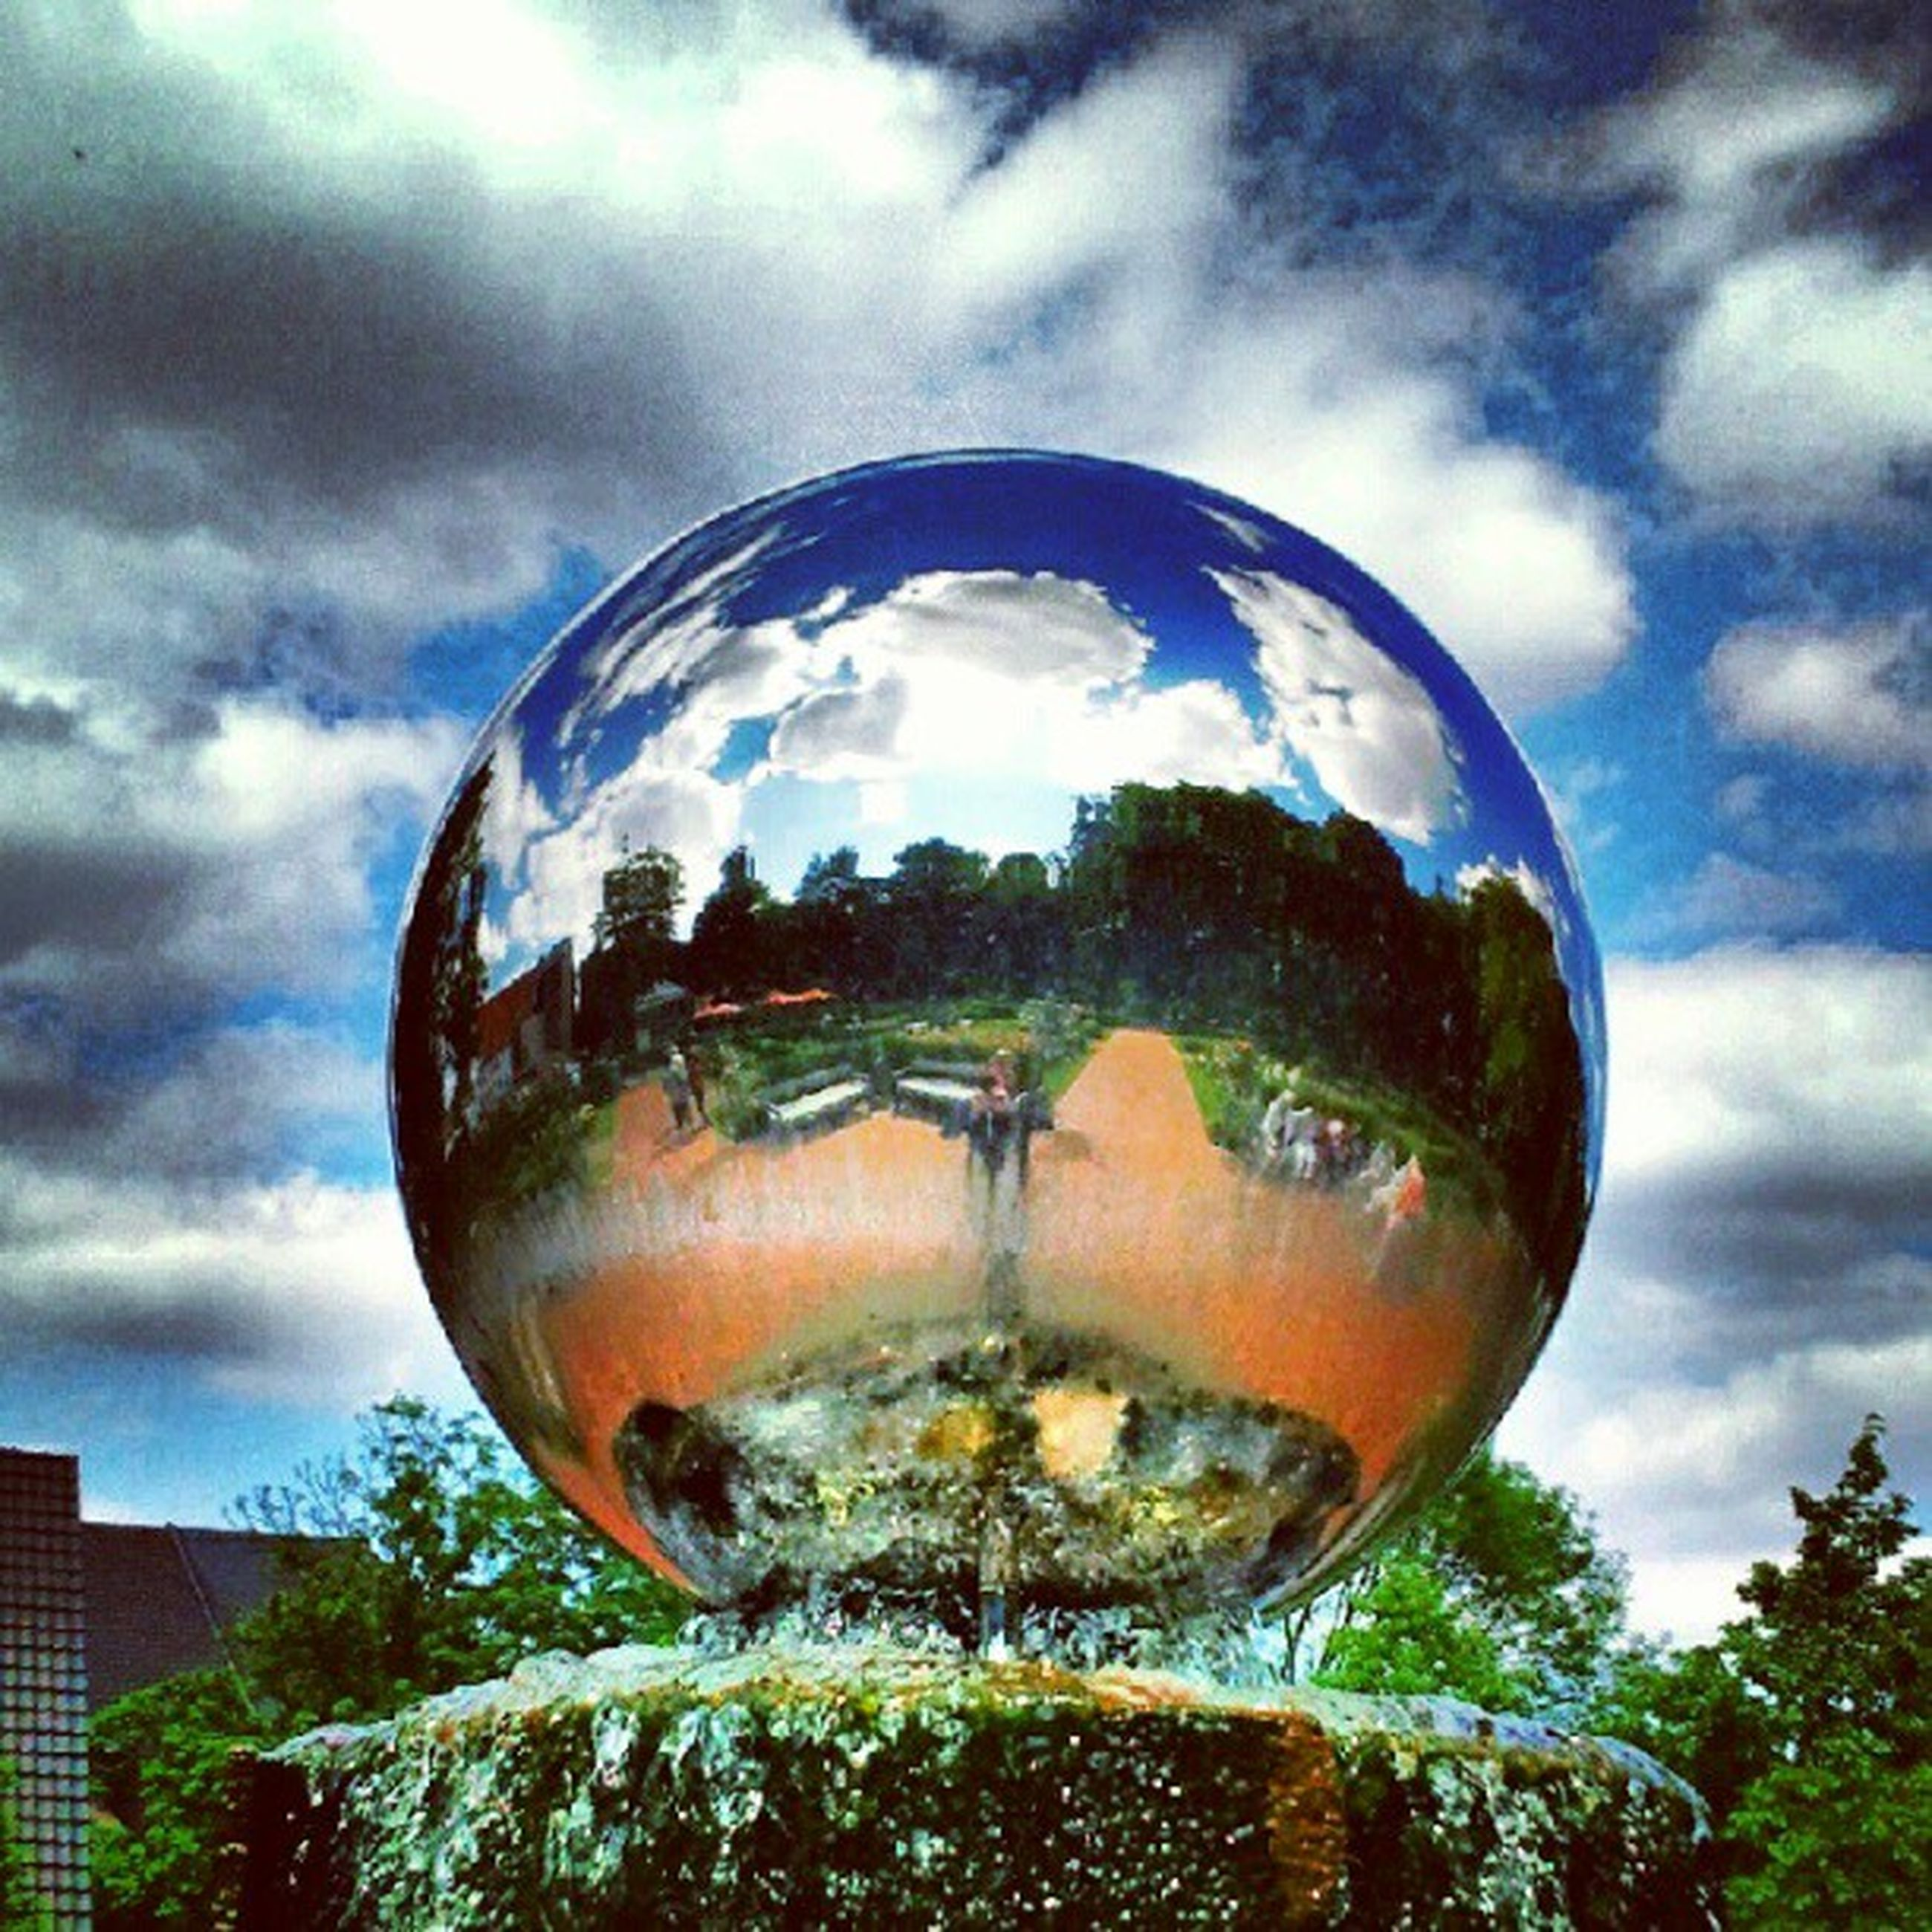 sky, cloud - sky, low angle view, cloudy, glass - material, sphere, transparent, tree, cloud, reflection, circle, weather, close-up, outdoors, no people, built structure, architecture, day, nature, shape